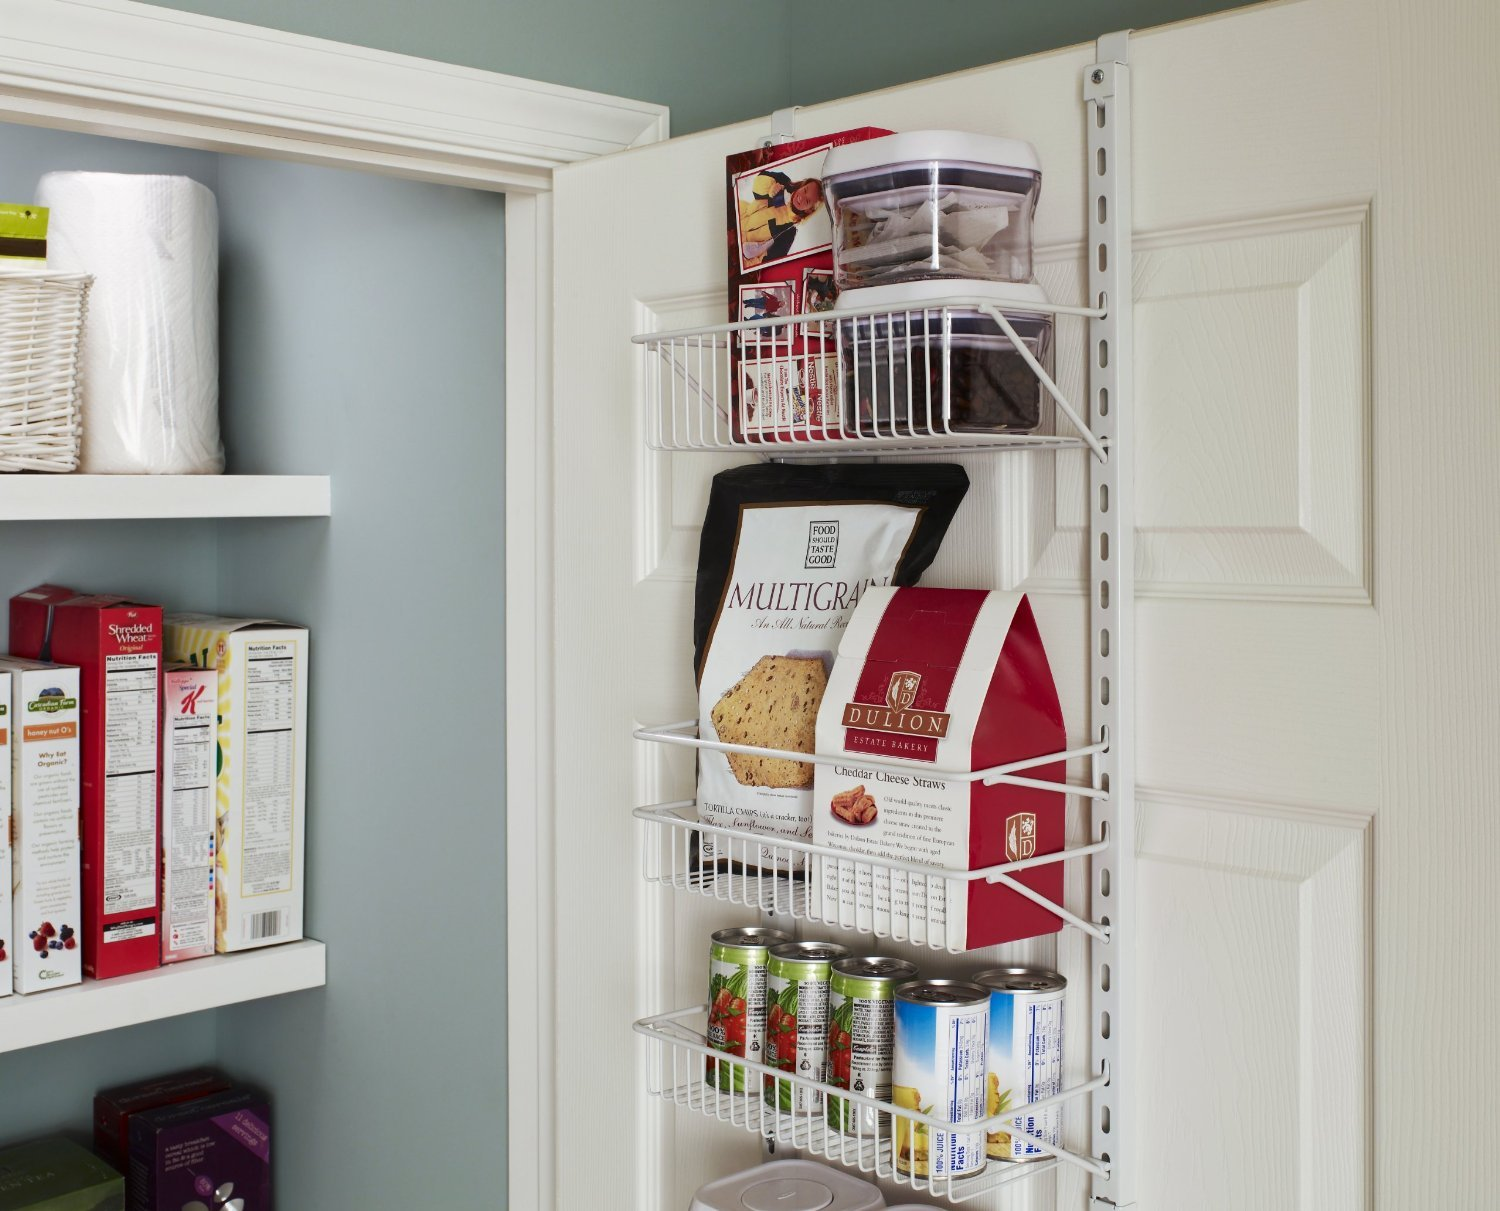 Closetmaid adjustable 8-tier wall and door rack 2 store and organize items of various sizes. Easily reposition baskets to accommodate tall and short items. Close wire spacing on baskets keeps items from tilting. Wall and over-the-door solution is perfect for kitchen and pantry organization.